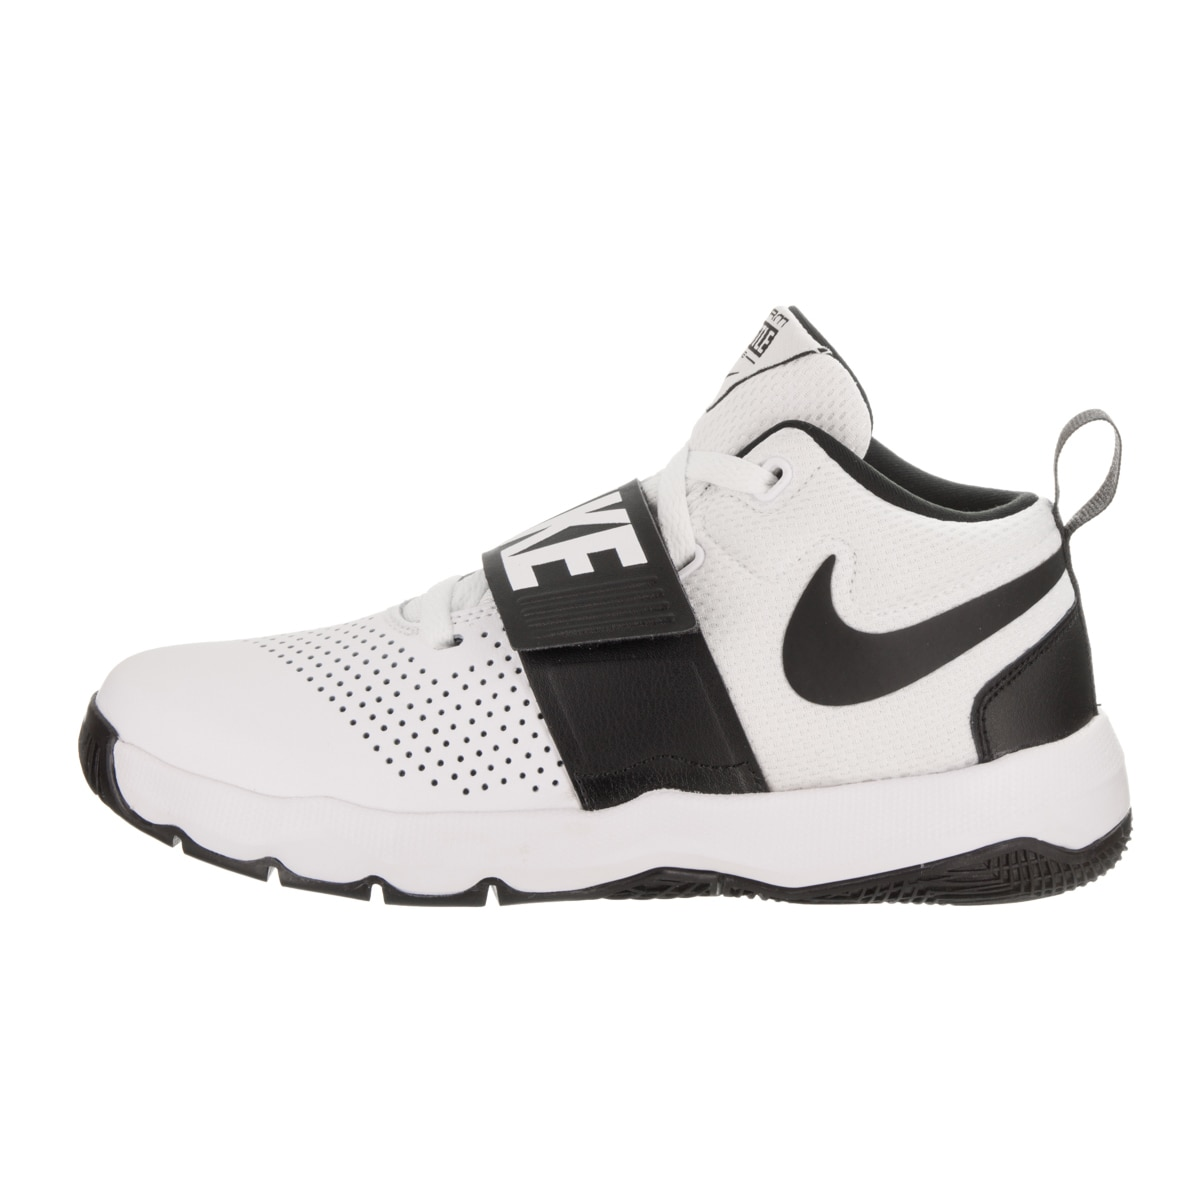 check out 2a8e9 16097 Shop Nike Kids Team Hustle D 8 (GS) Basketball Shoe - Free Shipping Today -  Overstock - 16850408